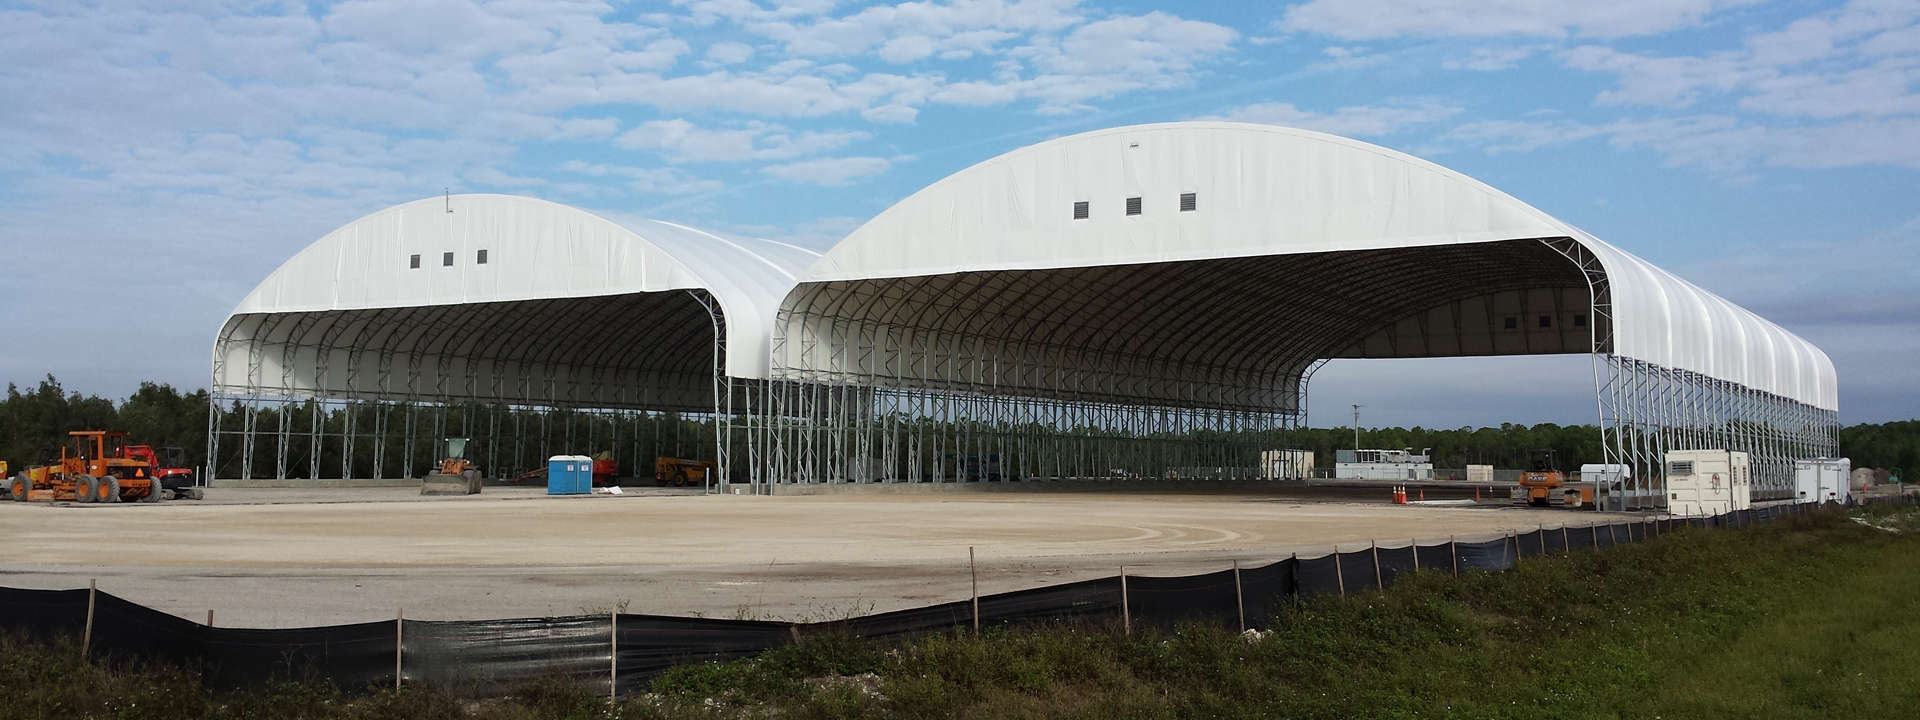 Military Hangar (article)